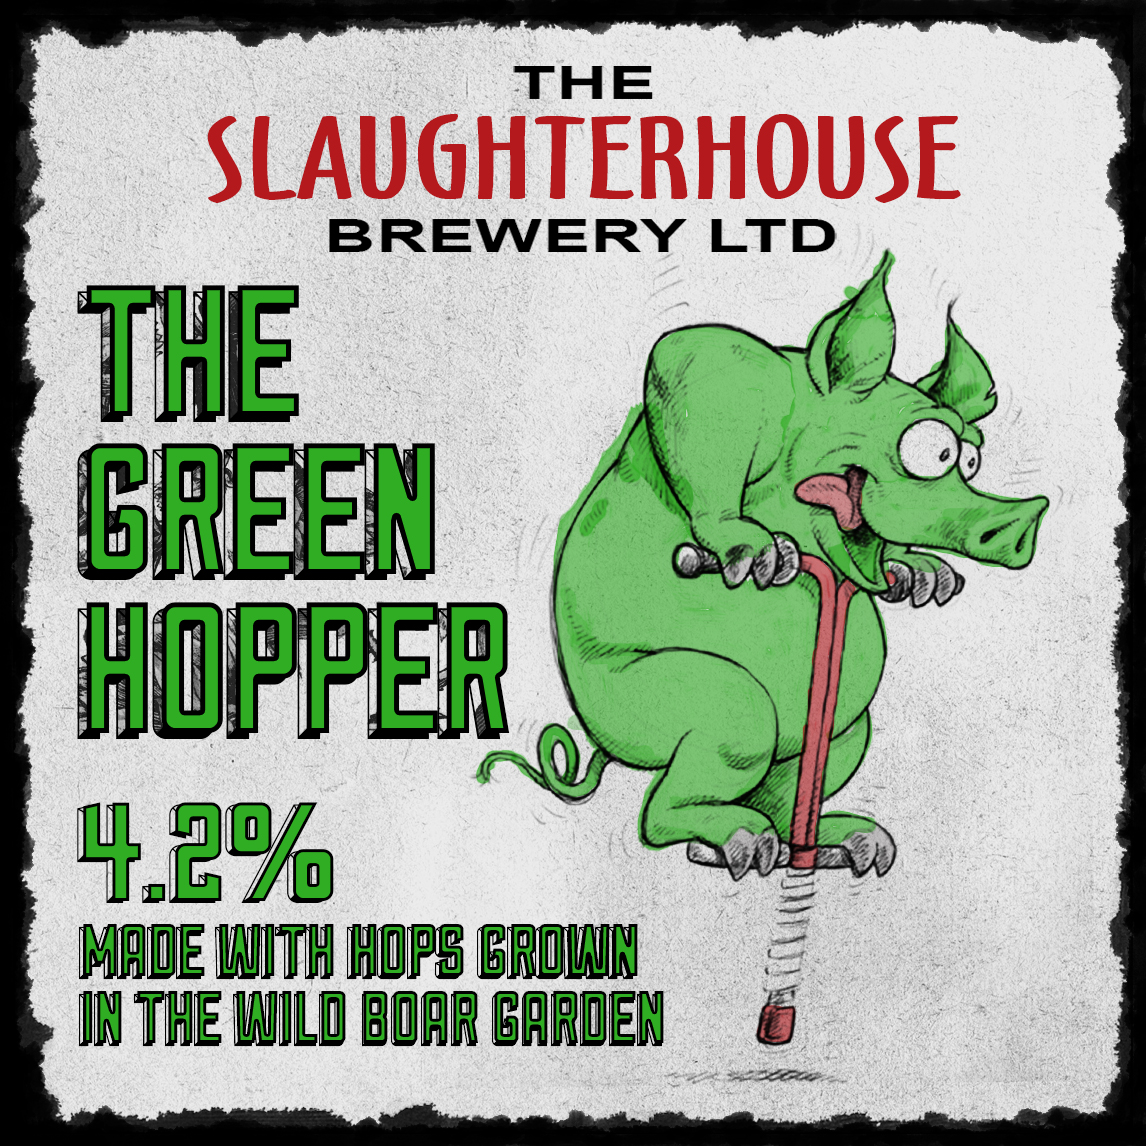 GreenHopper 4.2% Slaughterhouse Brewery